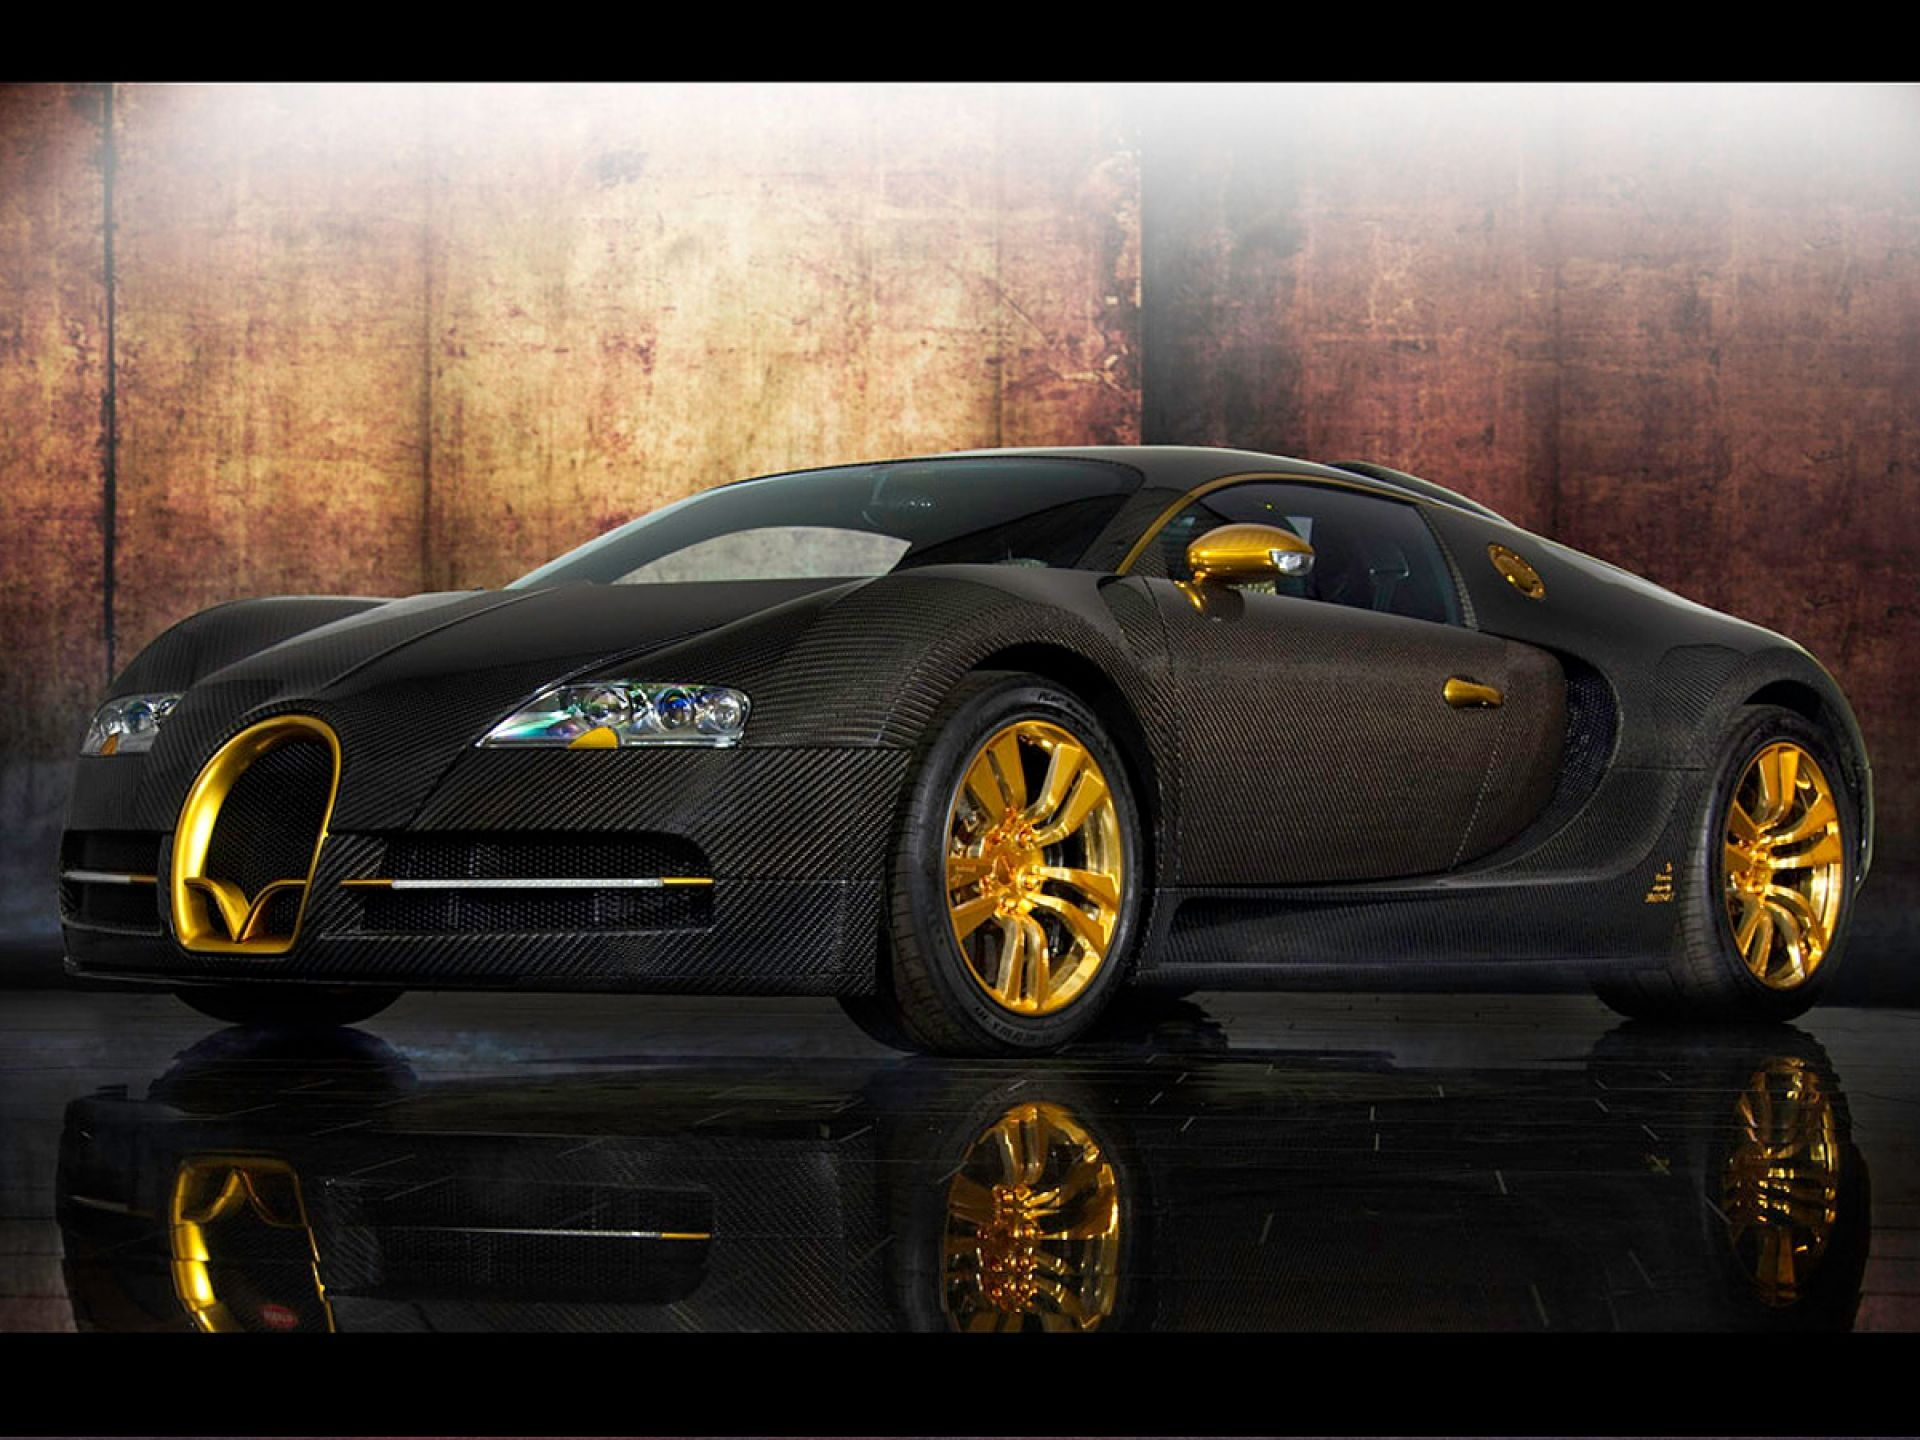 Coolest Car In The World 2013 Fast Car Images World Fast Cars